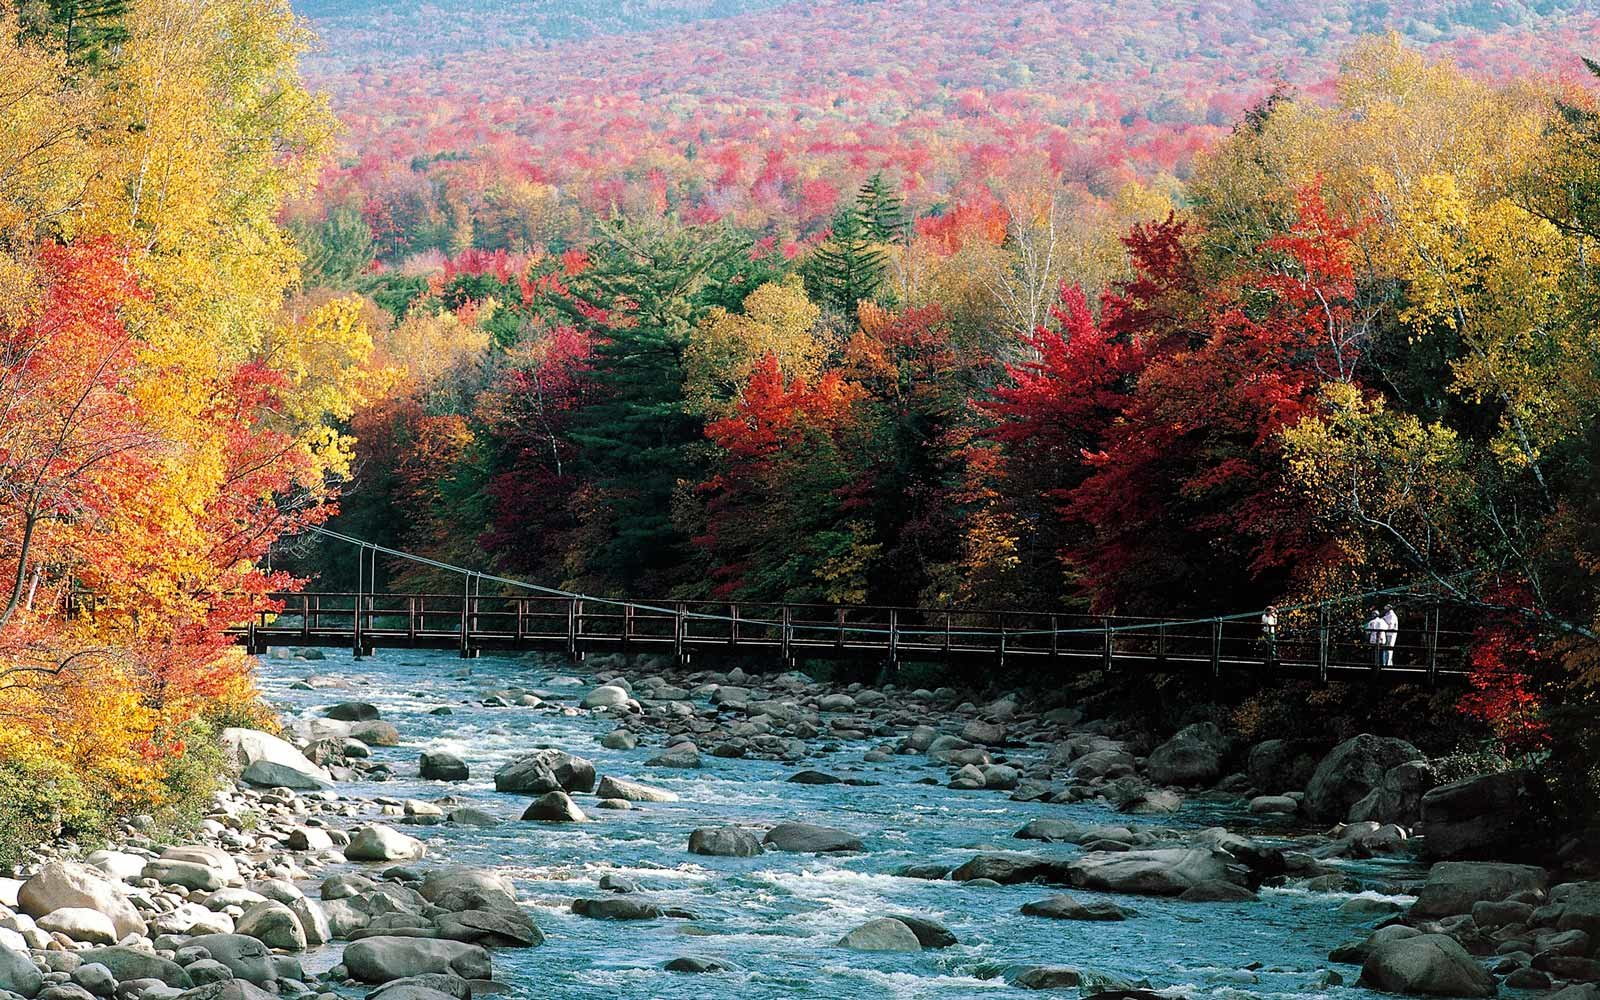 Trees with autumn foliage, White Mountains, New Hampshire, United States of America